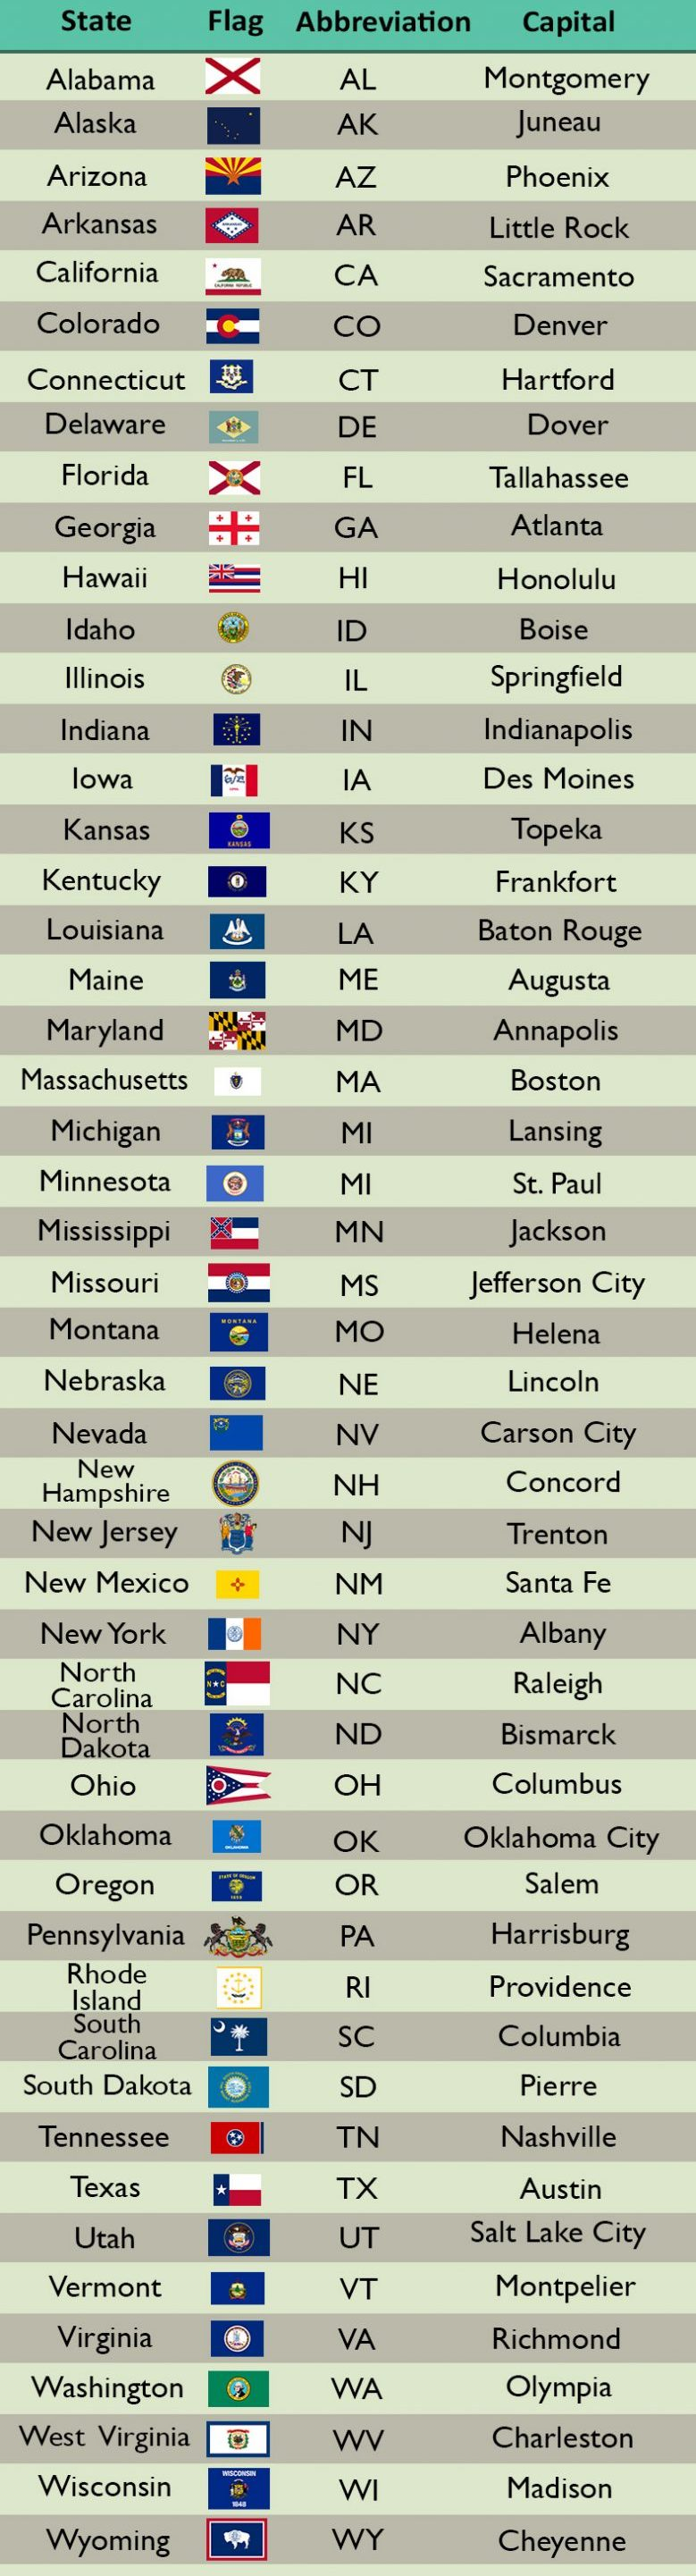 List of States in the US